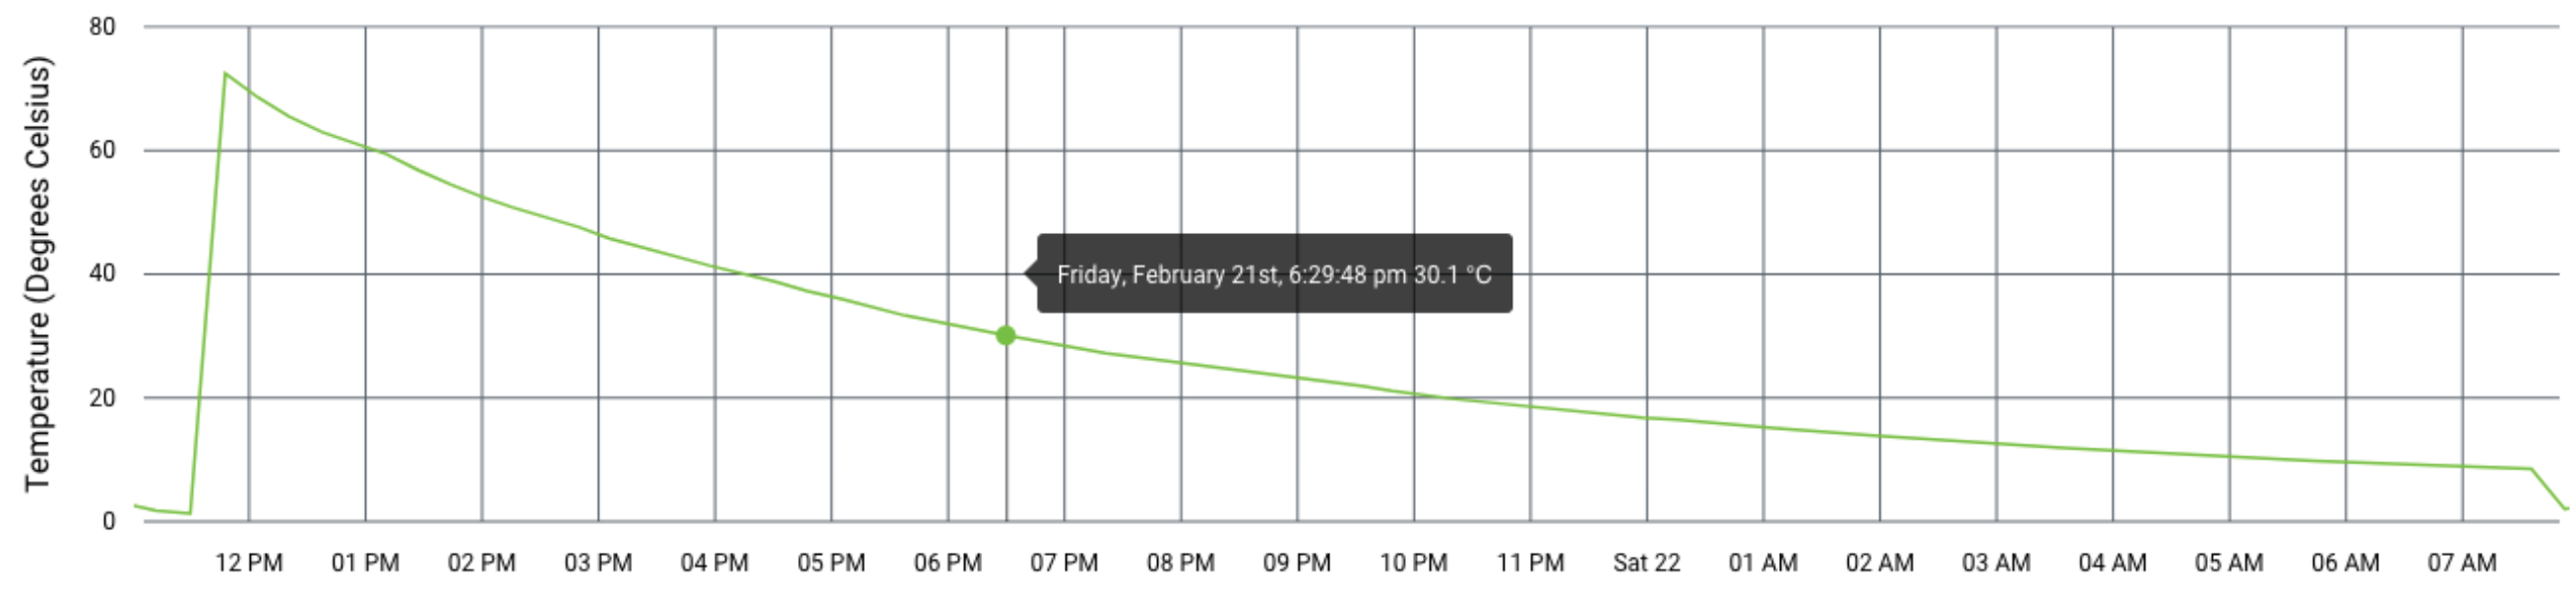 Temperature at 18:29 PM same day was at 30.1 degrees Celsius